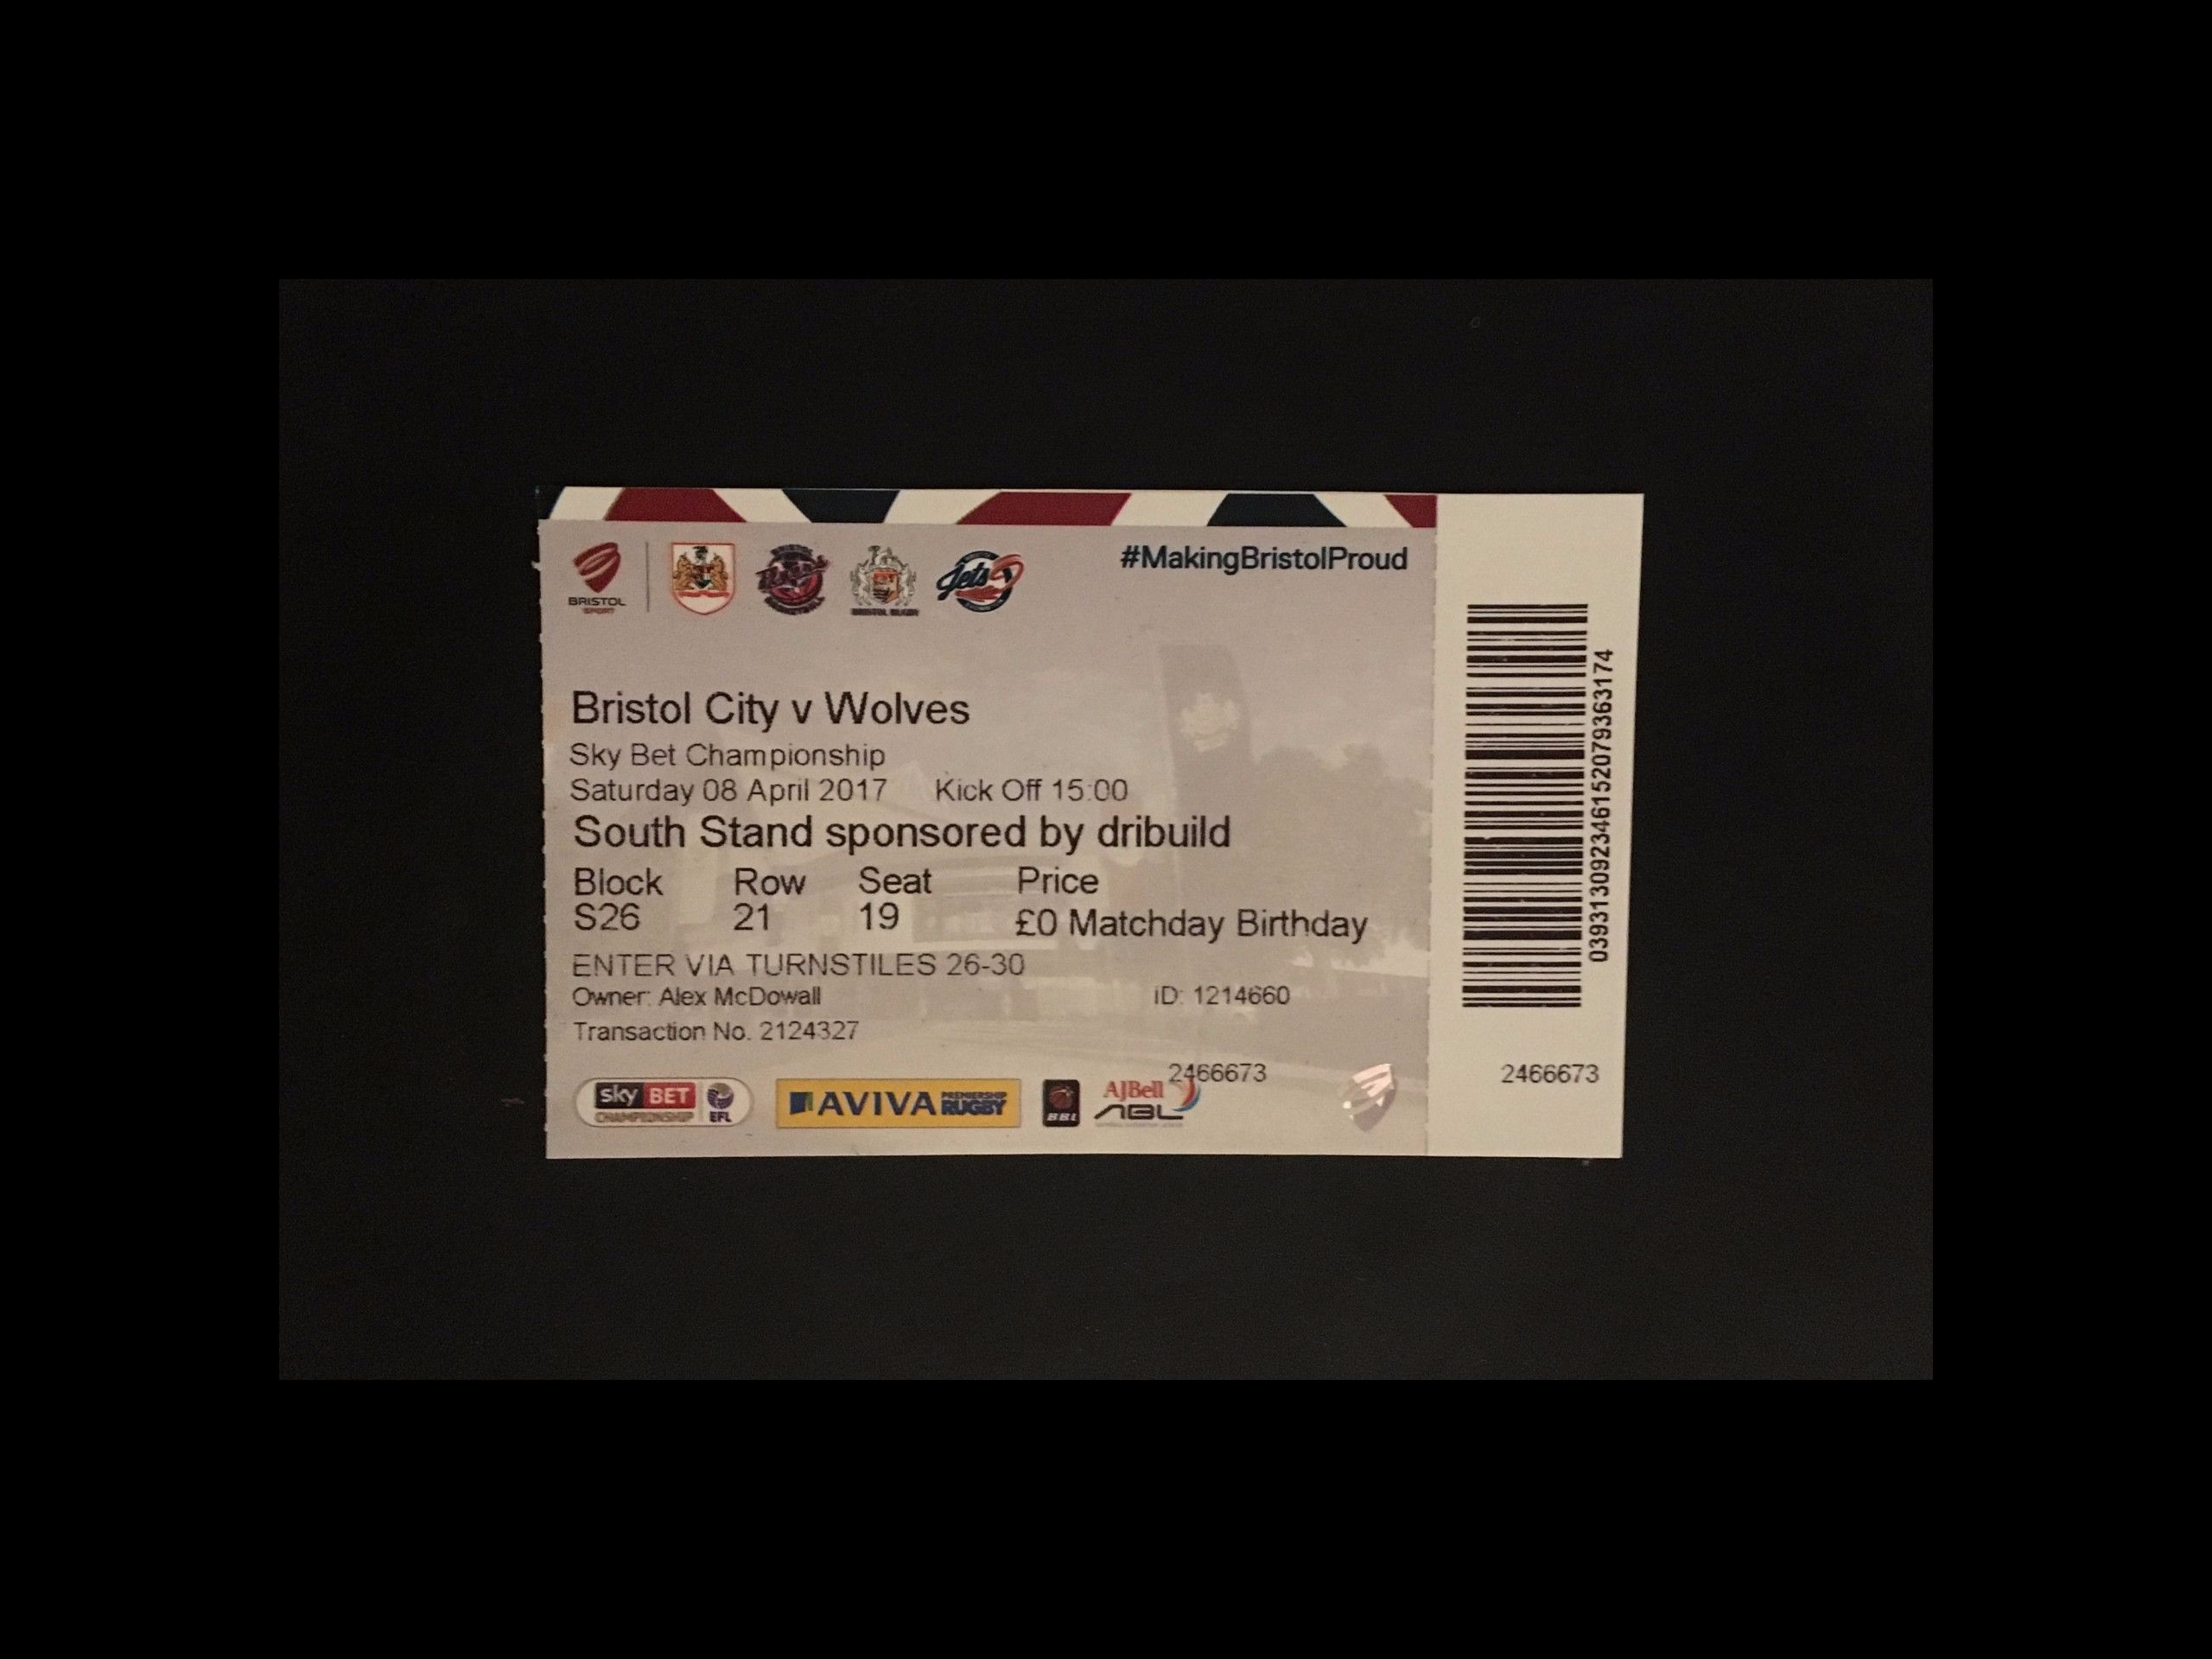 Bristol City v Wolves 08-04-2017 Ticket